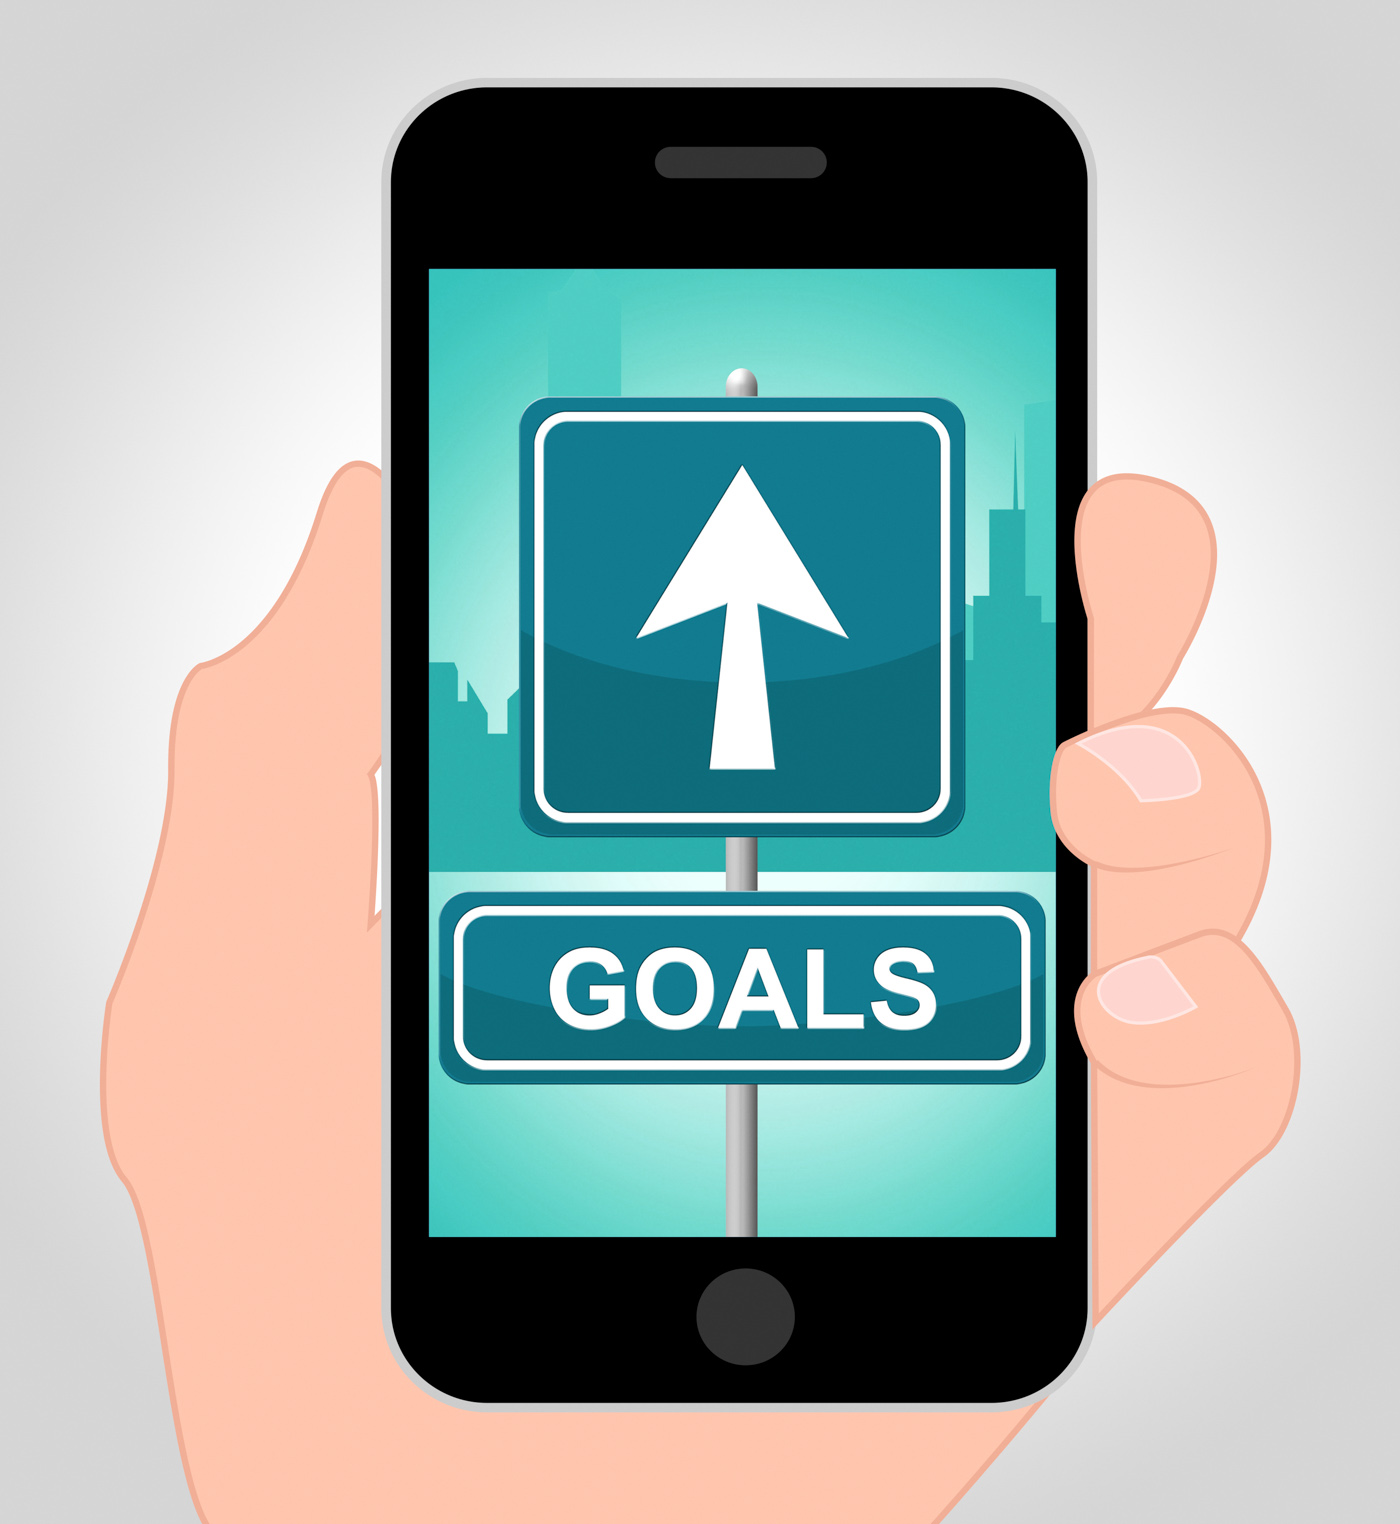 Goals Online Means Mobile Phone And Aim, Achieve, Scoring, Objective, Online, HQ Photo